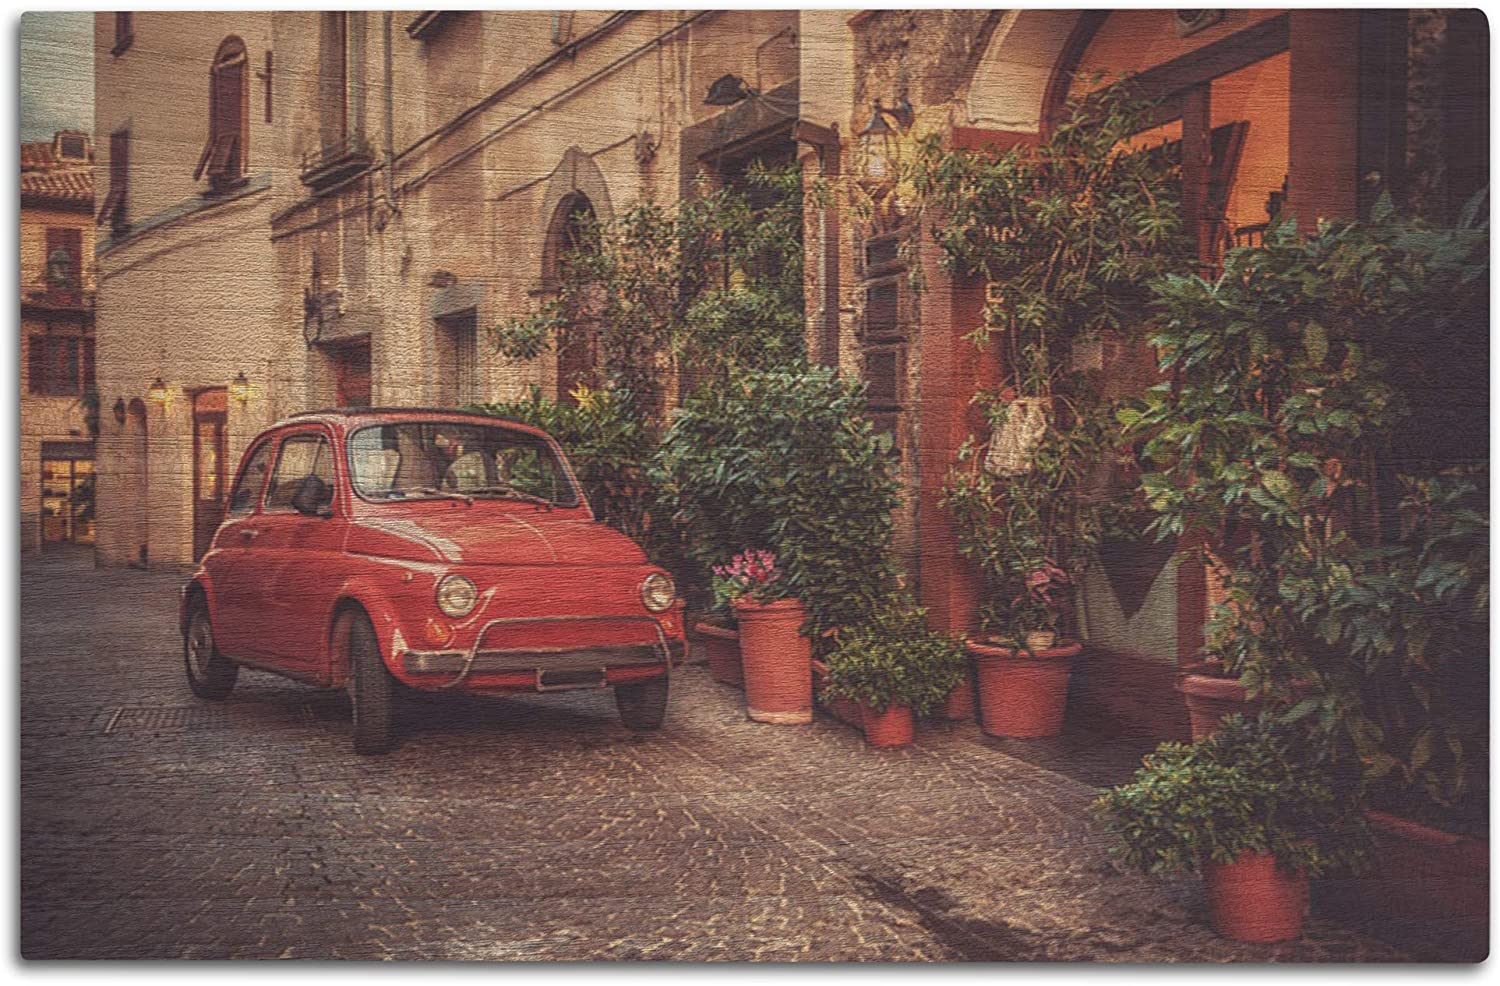 Lantern Press Vintage Car Parked on an Italian Street A-91429 (12x18 Wood Wall Sign, Wall Decor Ready to Hang)